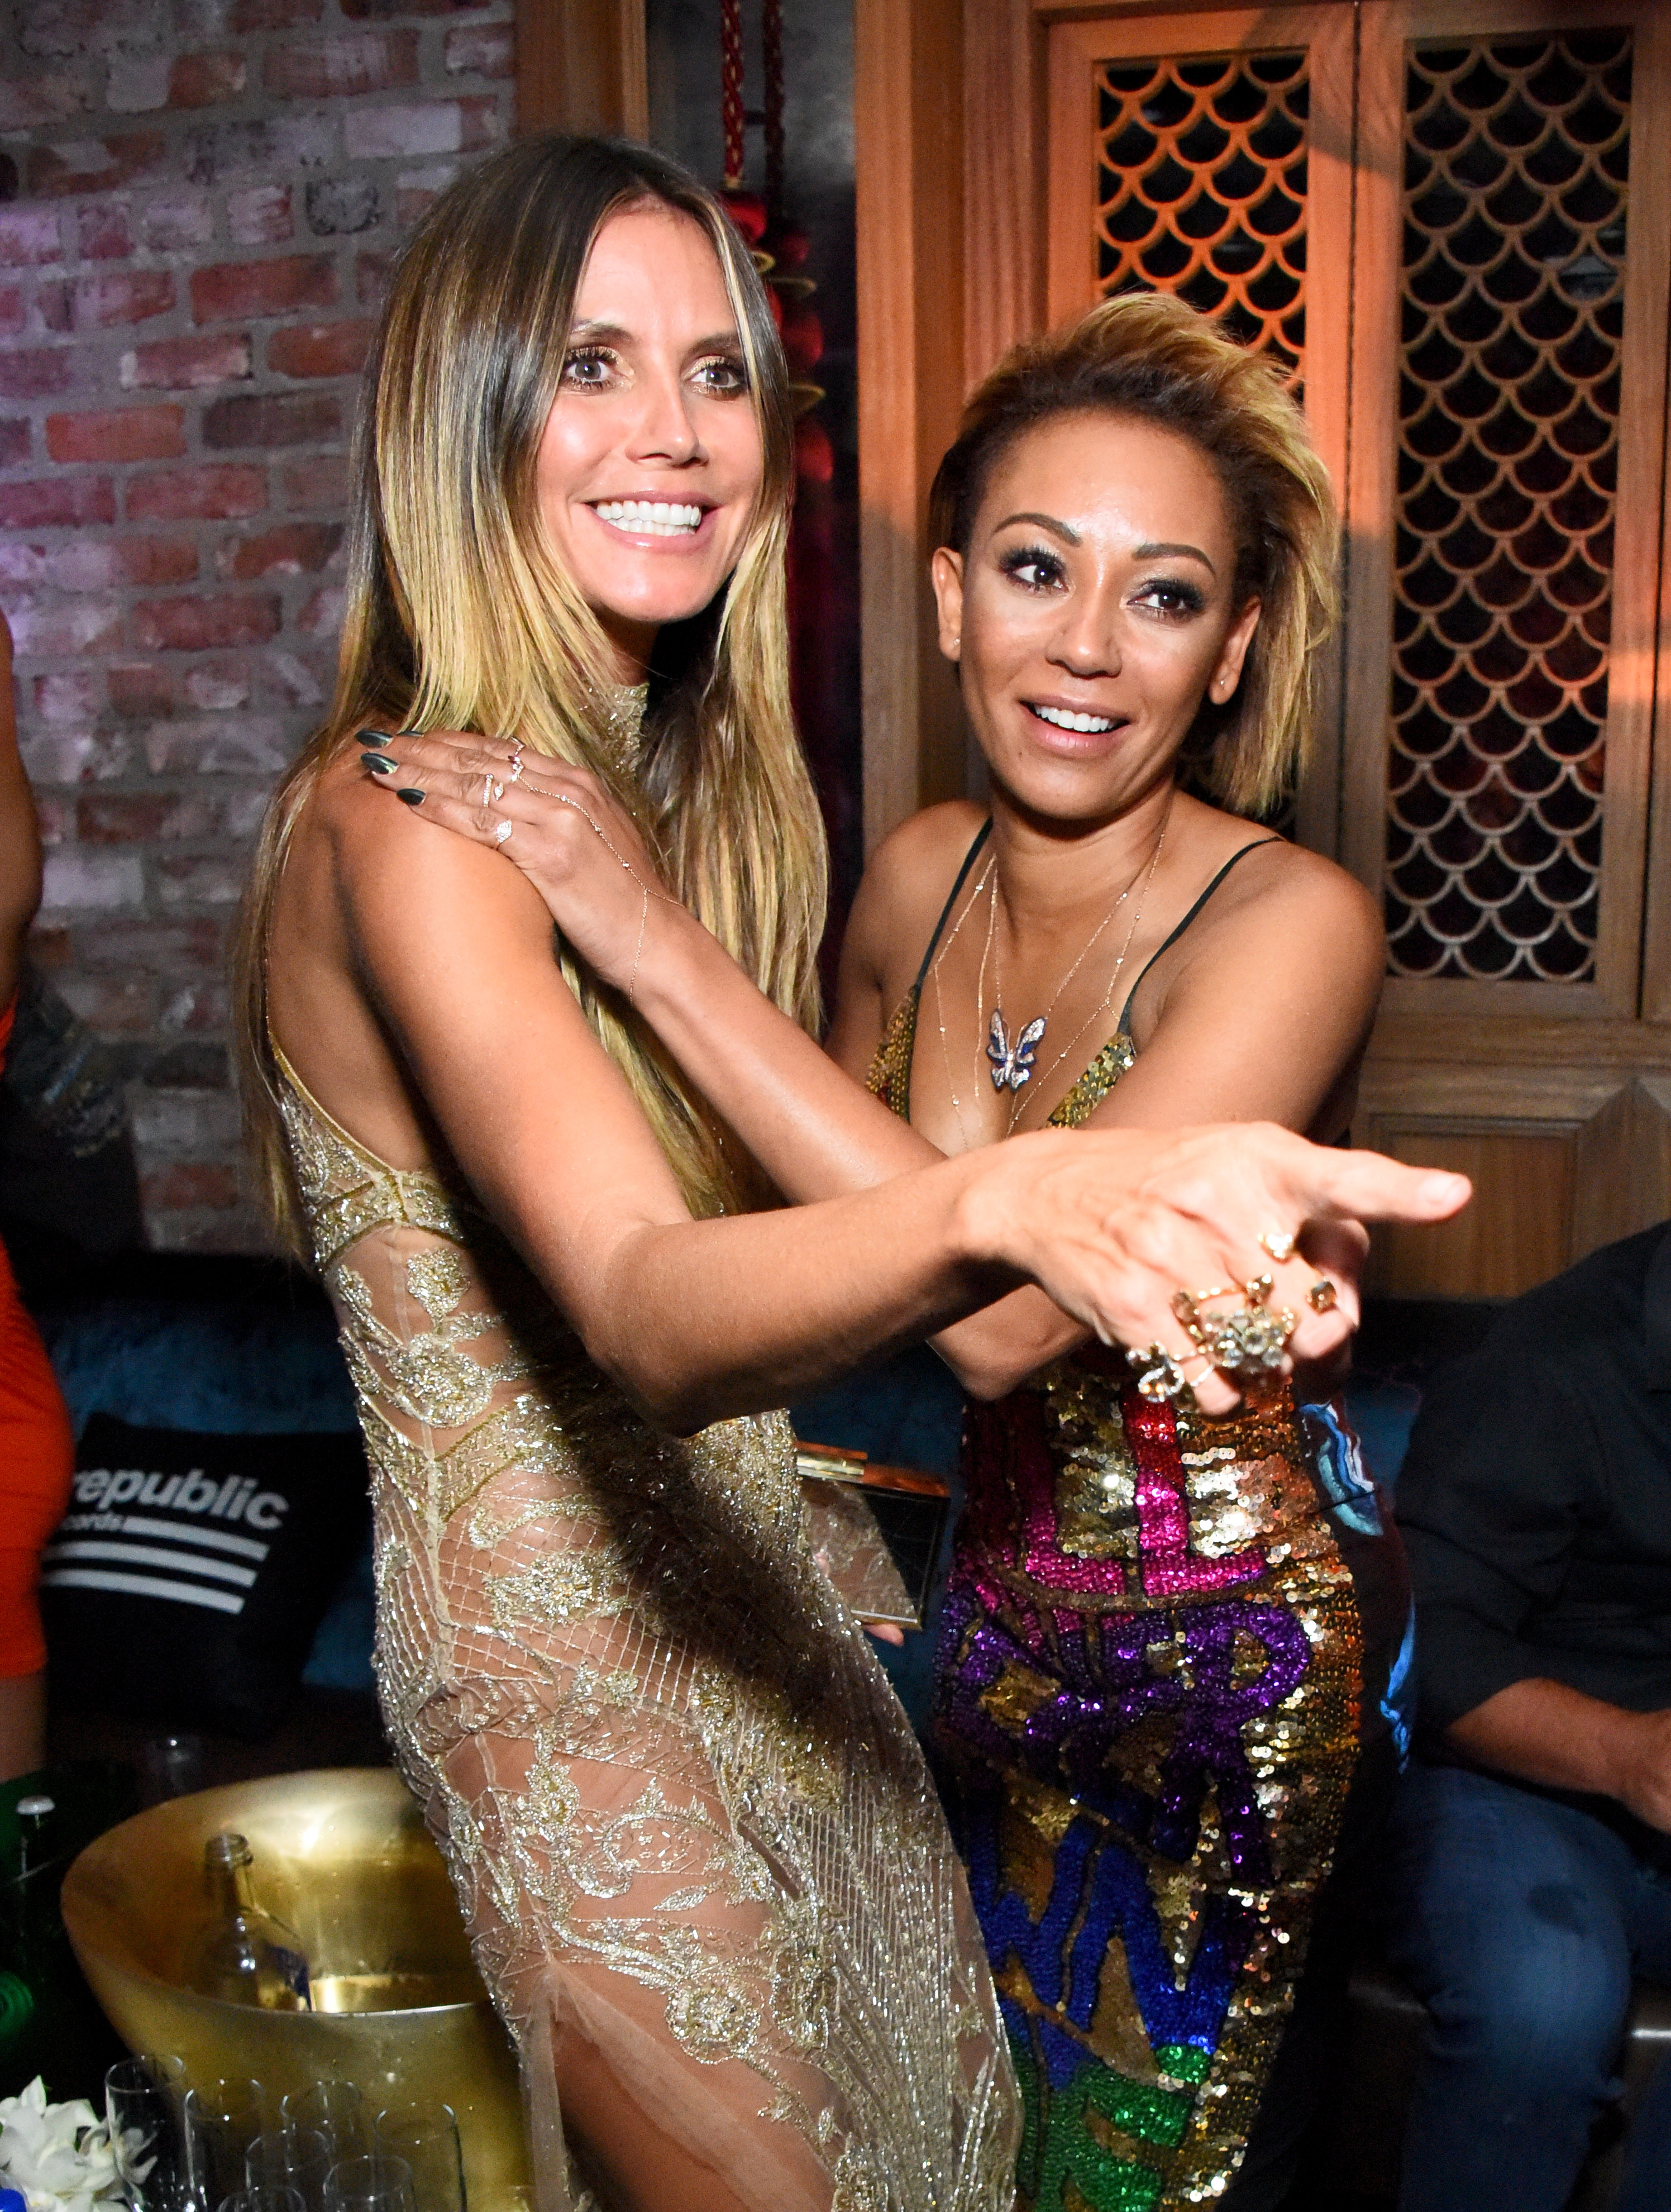 """<p>While Heidi Klum remained stitched into her Dundas barely-there gown and Mel B wore her Di$count Universe dress from the Australian label, most guests from the <a href=""""https://style.nine.com.au/2017/08/28/08/50/vma-red-carpet-2017/8"""" target=""""_blank"""">MTV VMAs</a> swapped outfits for a second trip down the red carpet at the after parties.</p> <p>Hollywood stylists doubled down on their pay packets with emerging trend-setter Millie Bobby Brown trading her Rodarte for Christopher Kane and Hailee Steinfeld swapping her mini-Versace for a mini-David Koma dress.</p> <p>Mexican singer Eiza Gonzalez joined Mel B in raiding the Australian fashion racks, picking out a beautiful bronze suit with Nina Dobrez also suiting up in scarlet Armani.</p> <p>See what the stars where to party in here.</p> <p></p>"""